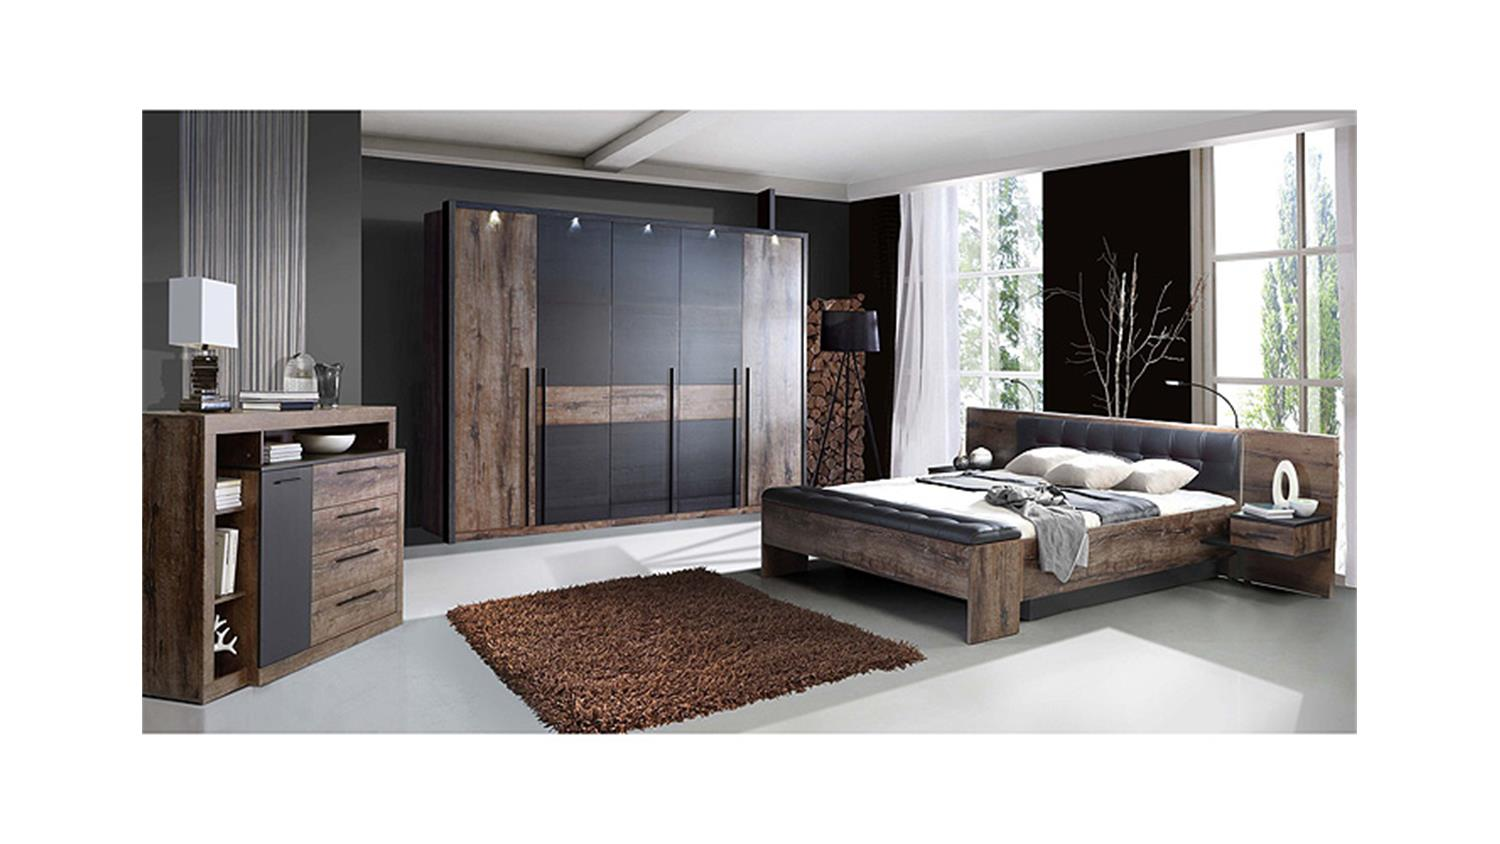 sitzbank bellevue polsterbank bank polsterung schlammeiche. Black Bedroom Furniture Sets. Home Design Ideas